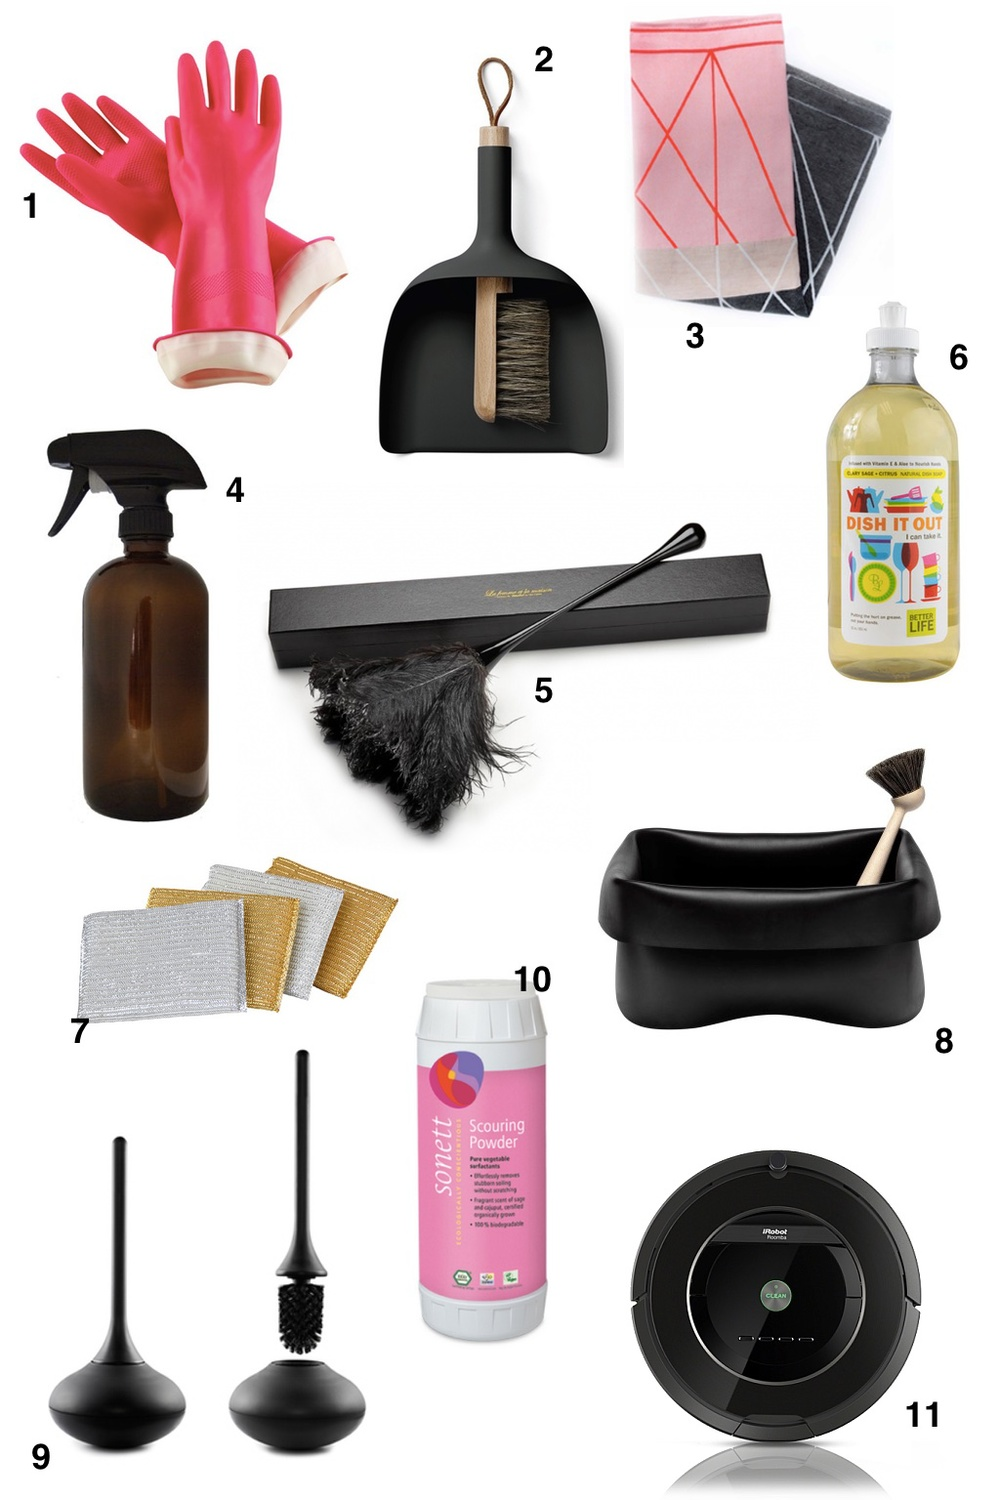 1. CLEANING GLOVES // 2. DUST PAN & BRUSH // 3. DISH TOWEL // 4. SPRAY BOTTLE // 5. FEATHER DUSTER // 6. DISH SOAP // 7. SPONGES // 8. KITCHEN SINK CADDY // 9. TOILET BRUSH // 10. SCOURING POWDER // 11. ROOMBA VACUUM